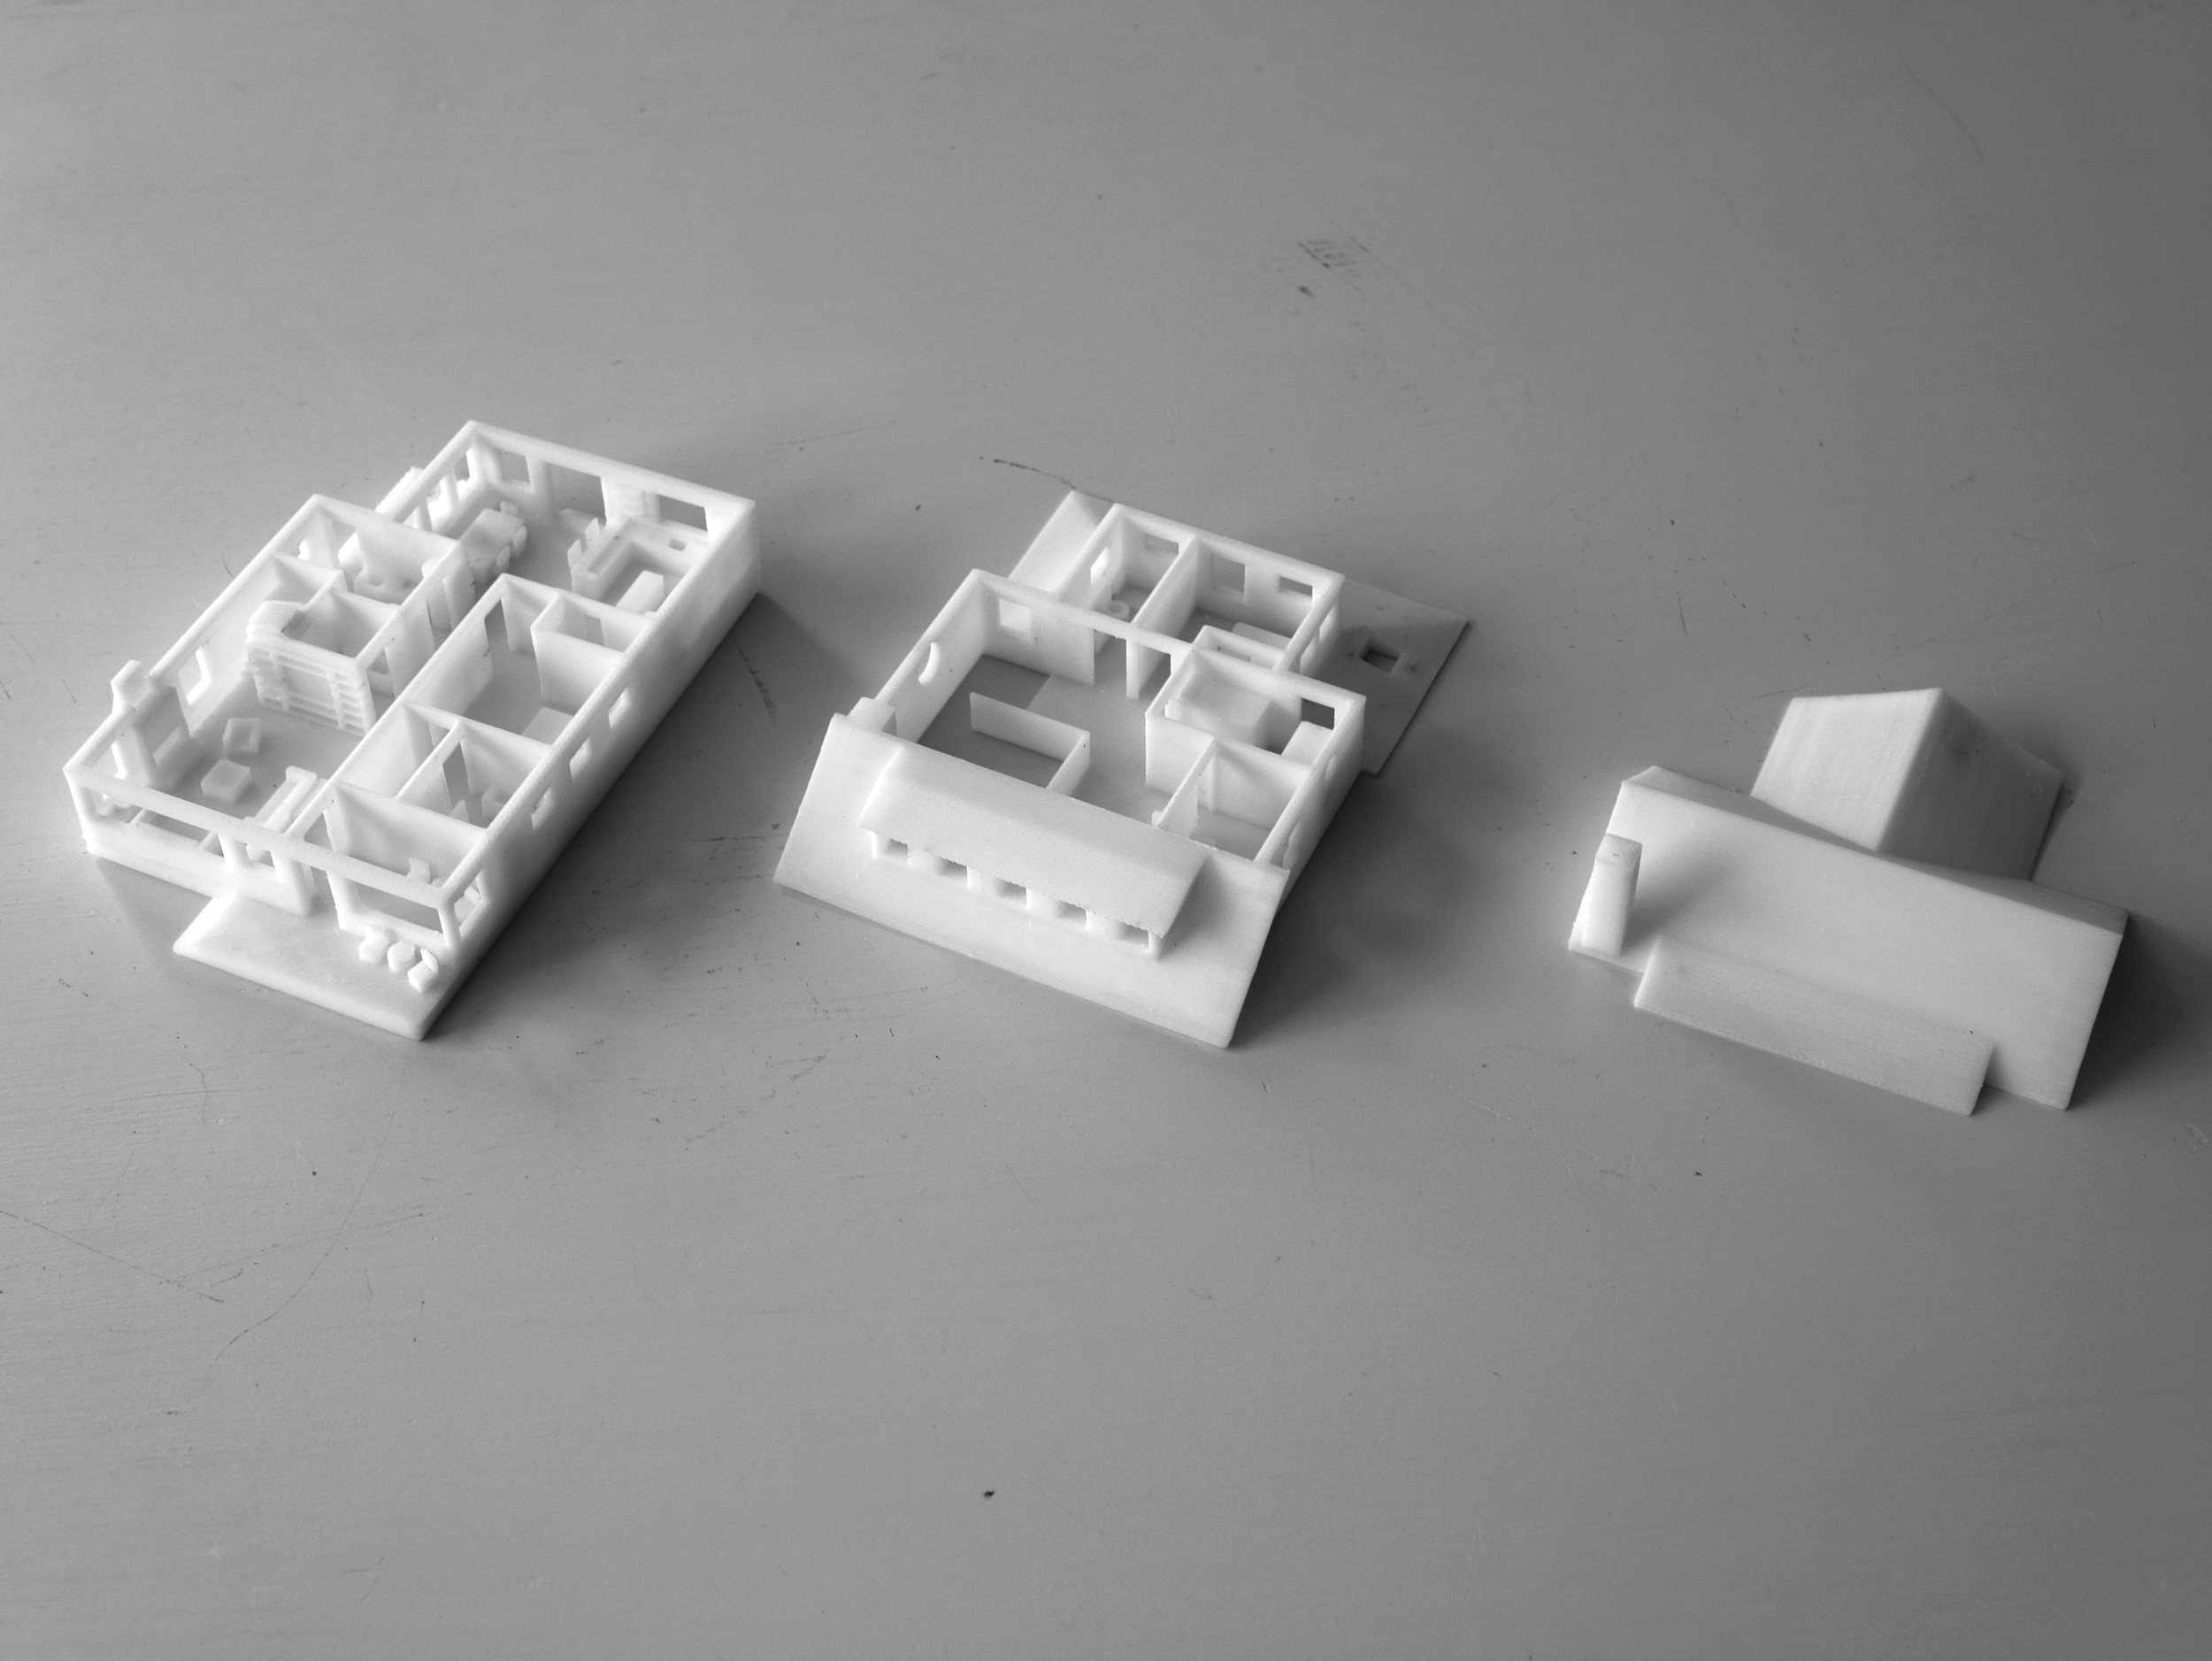 3D-printed maquette in three parts